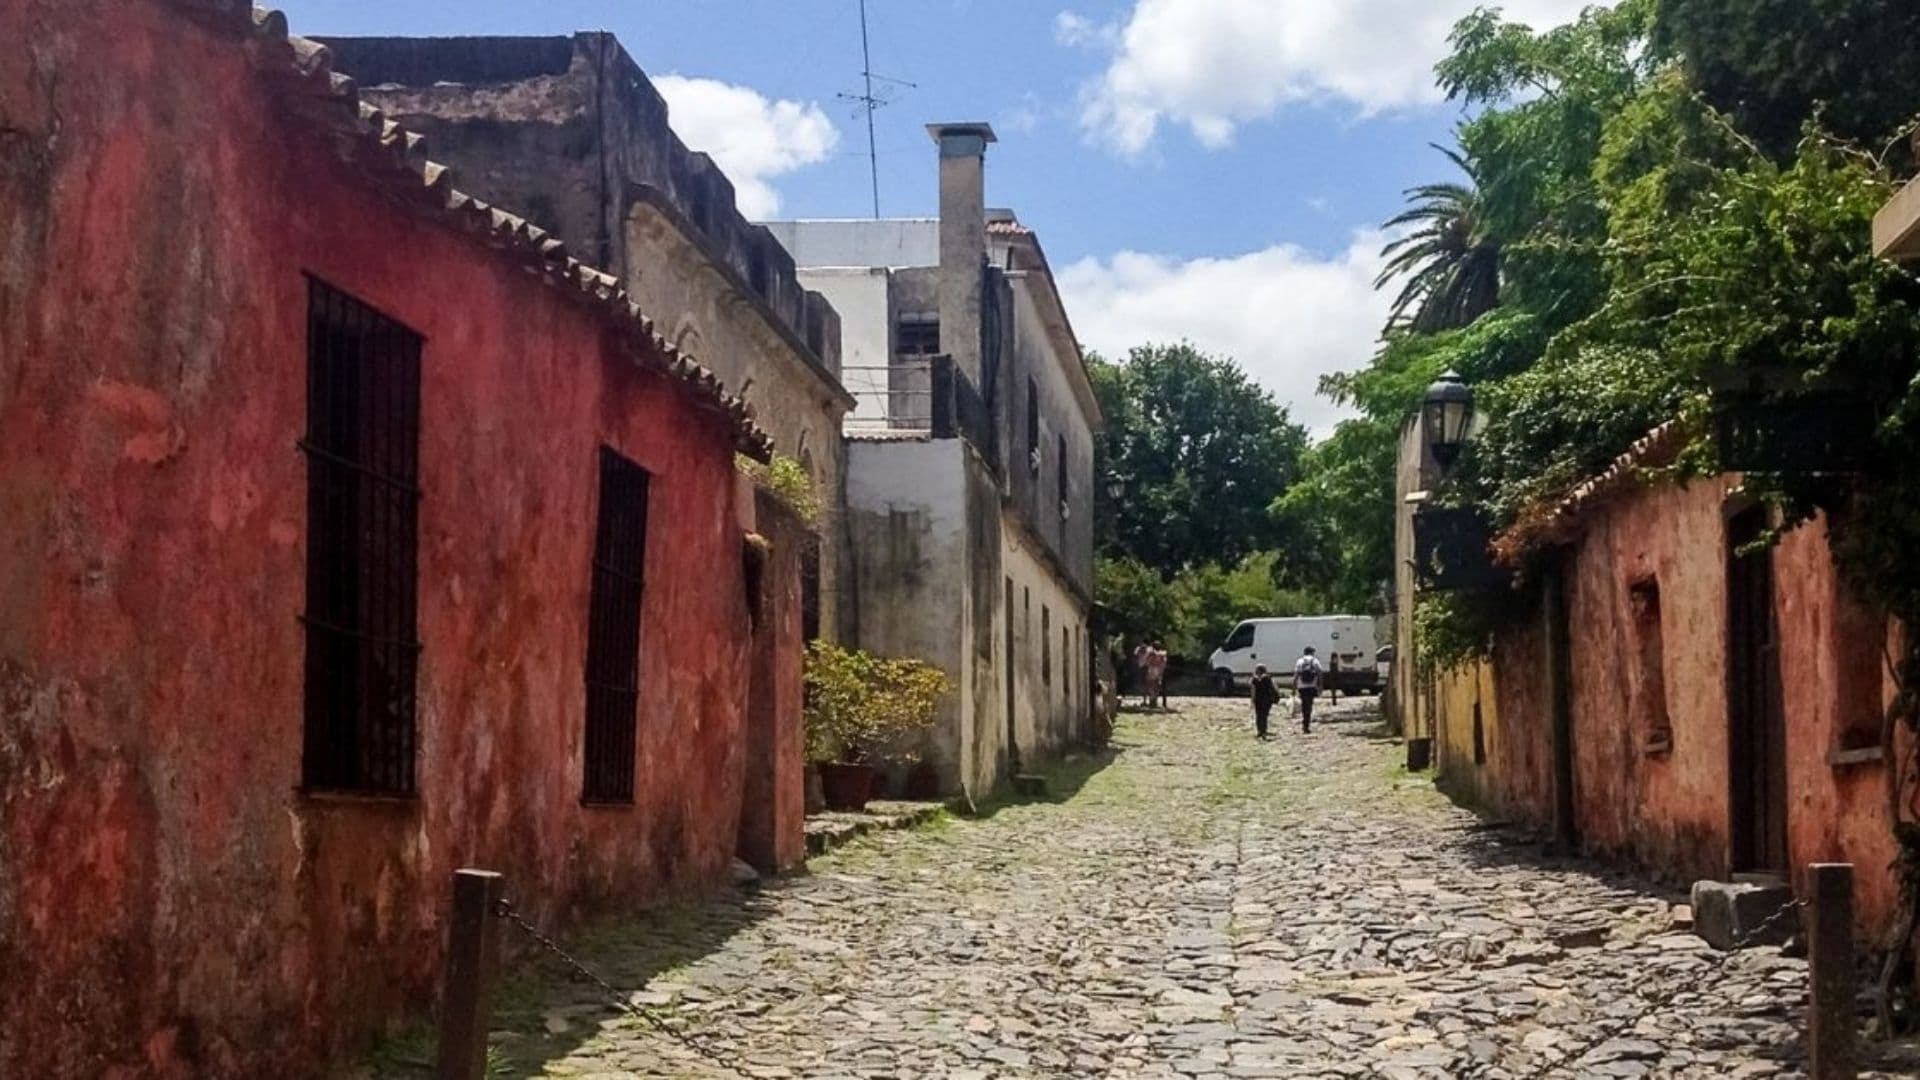 Colonia del Sacramento vacation how to save money traveling